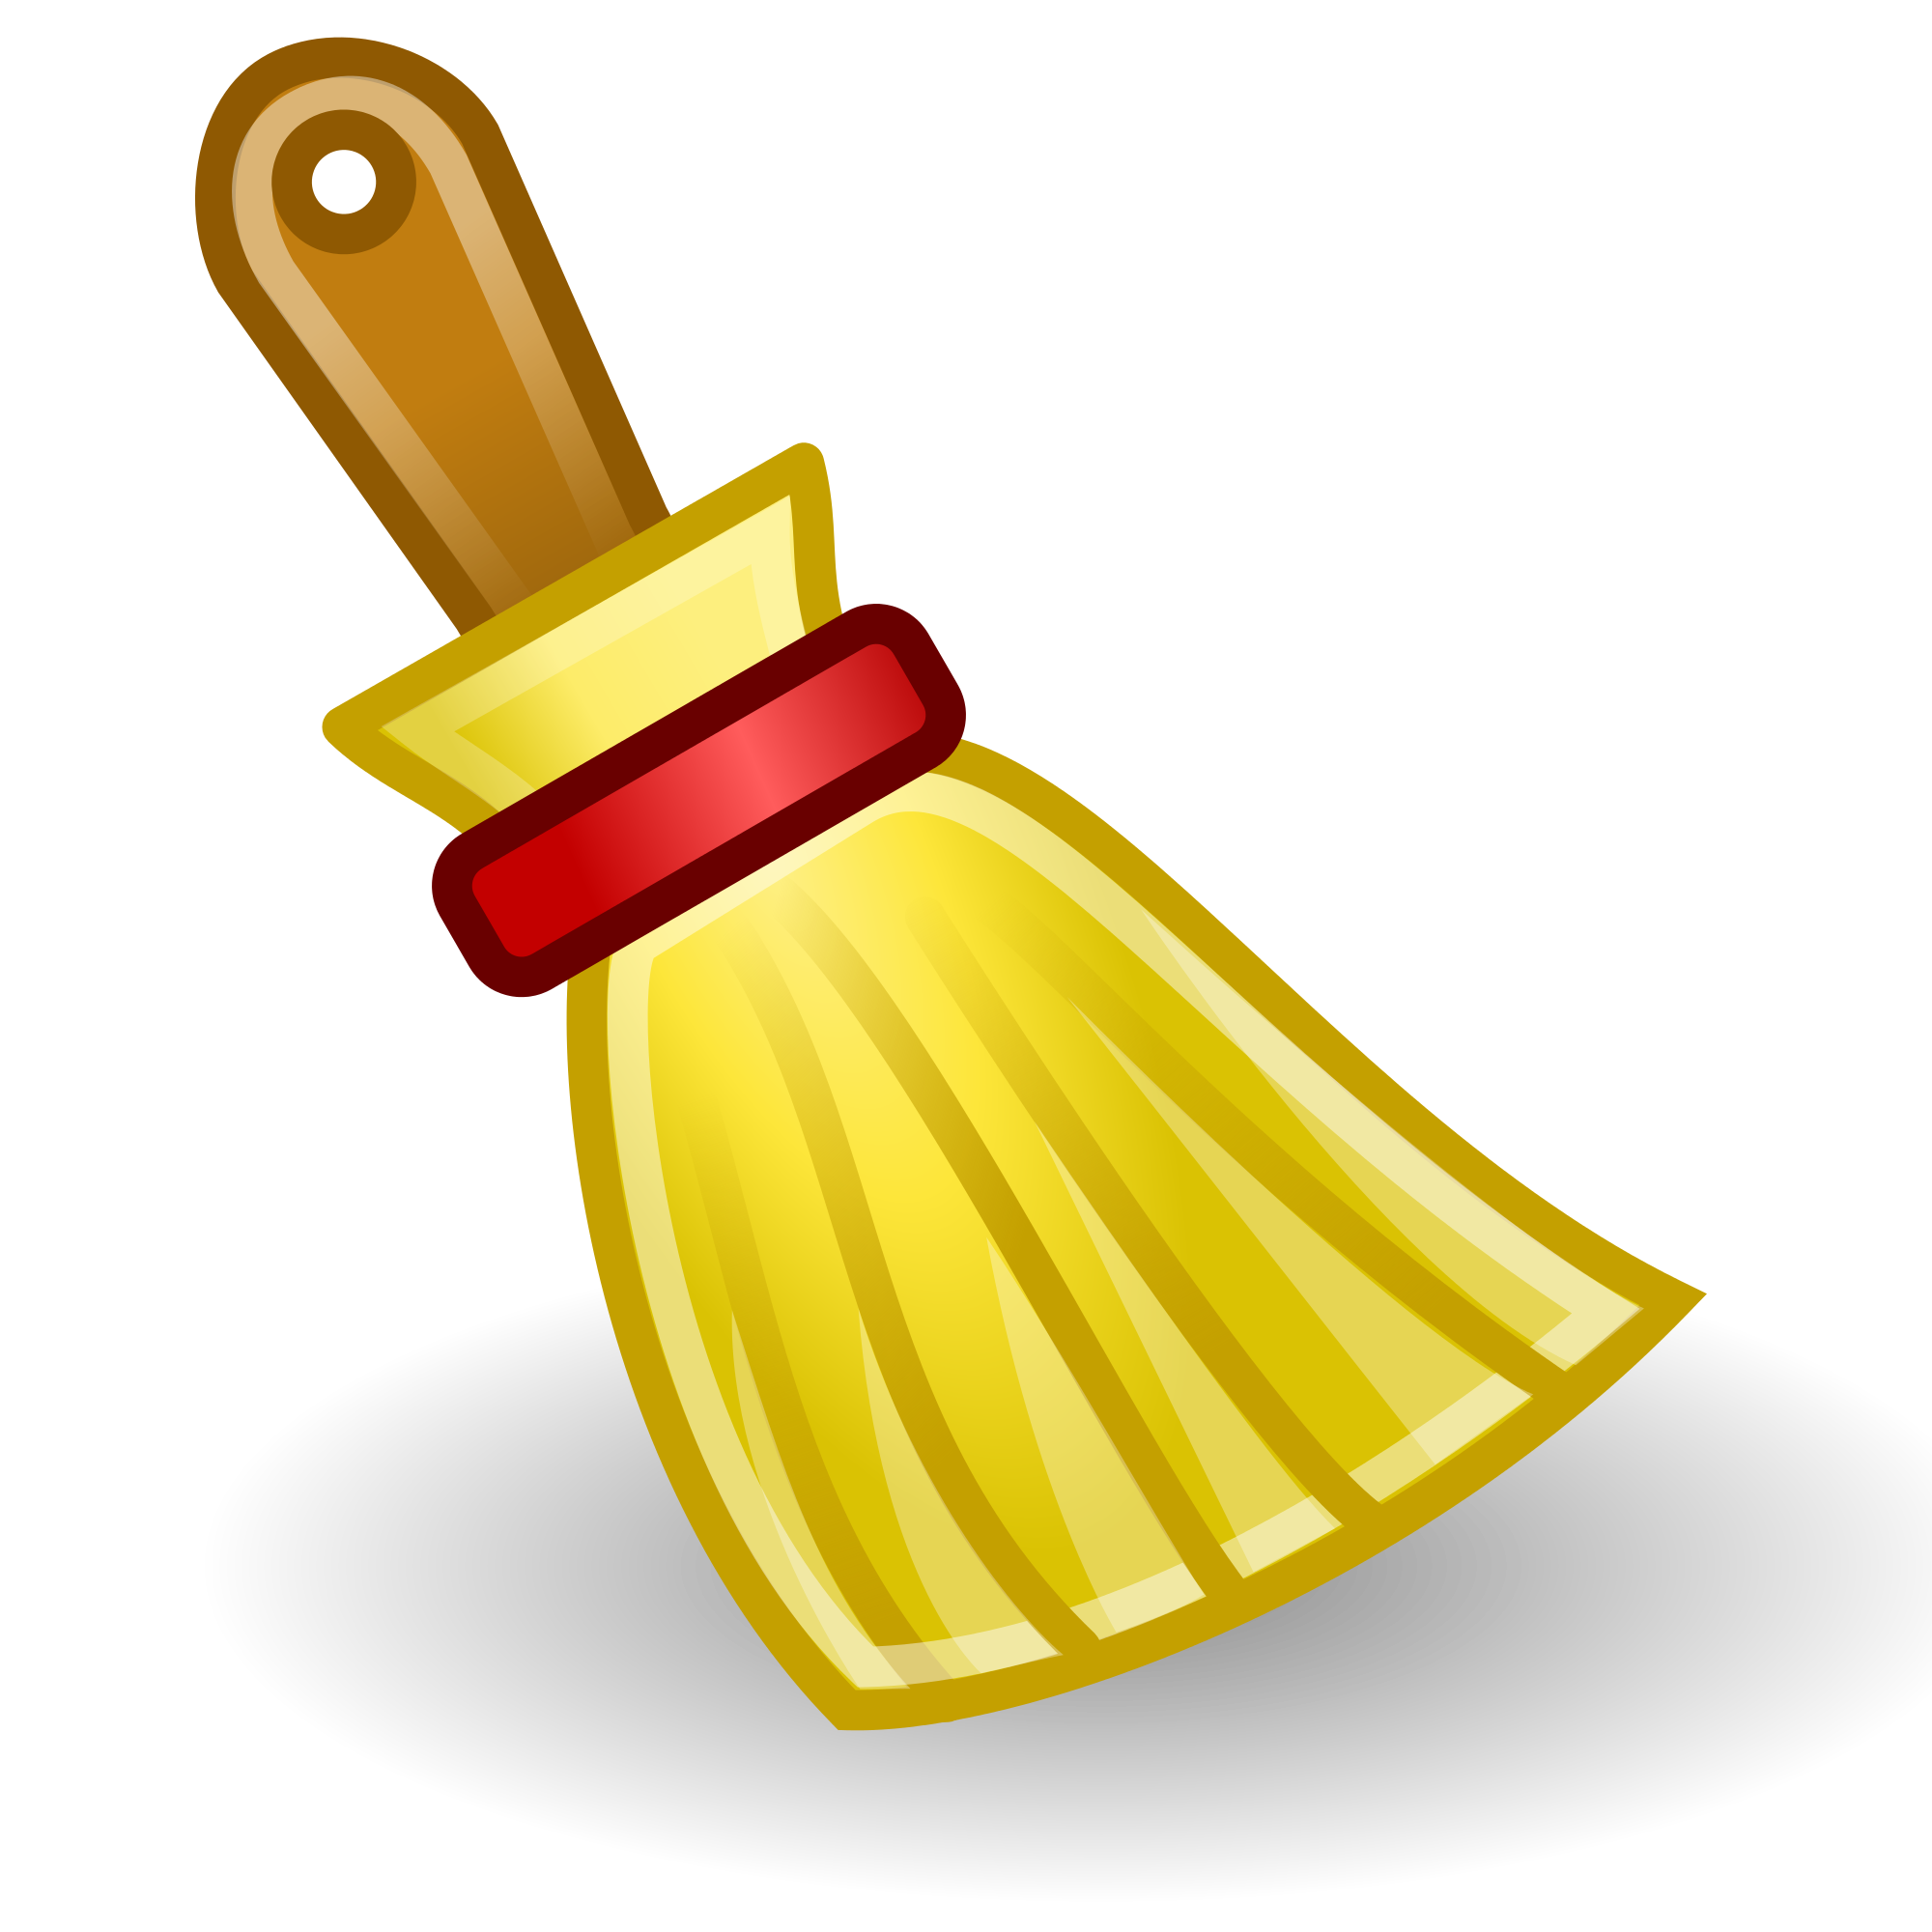 picture transparent library Png images free download. Broom clipart sweeping broom